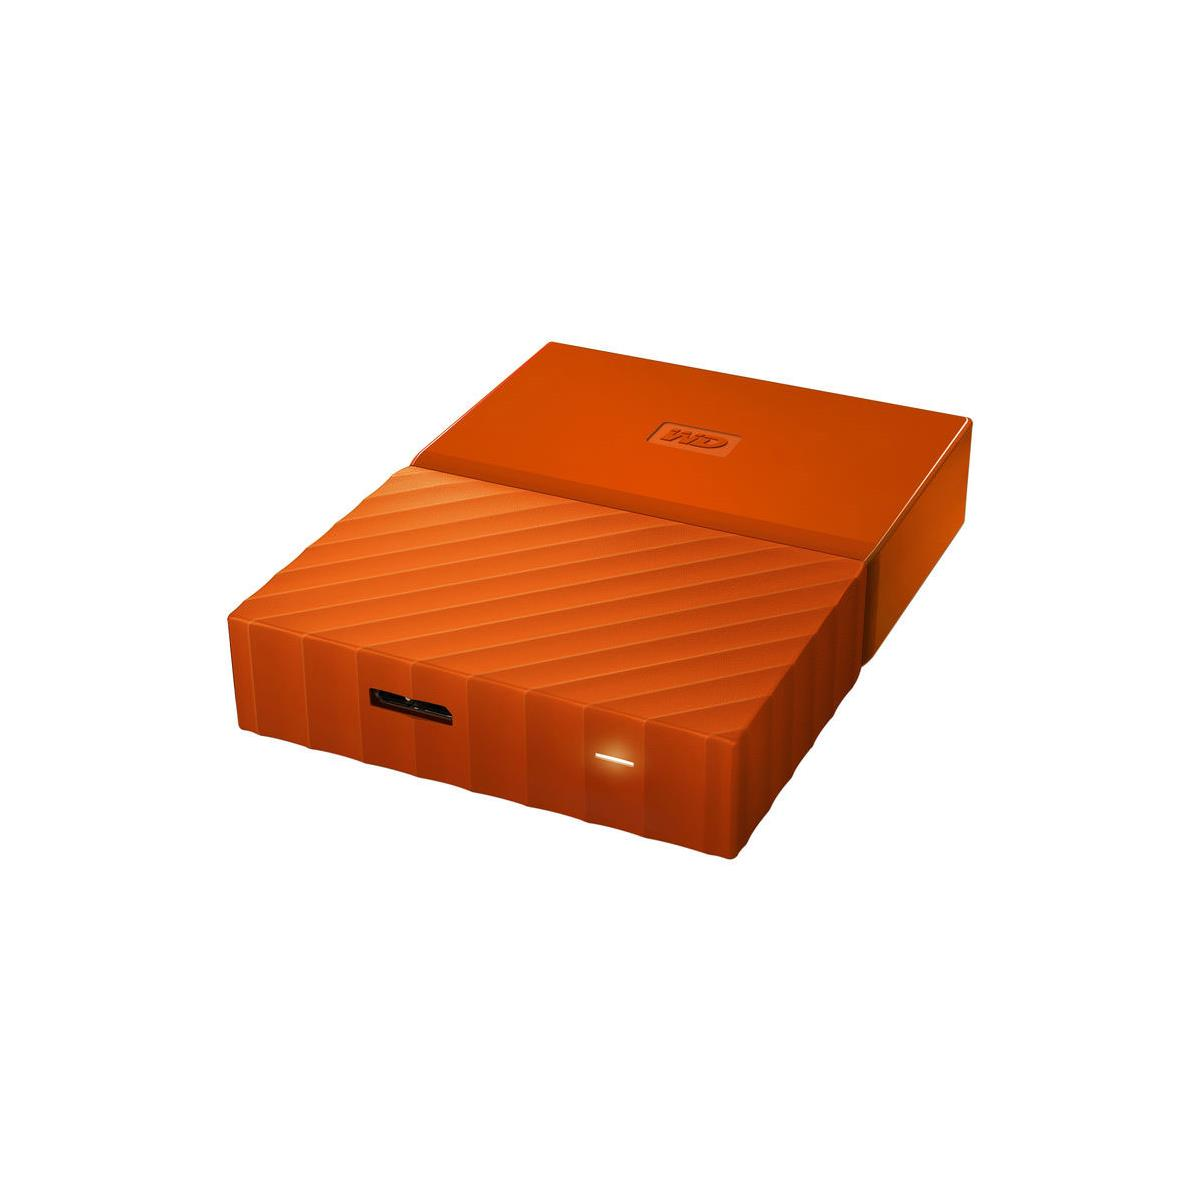 WD My Passport WDBYFT0040BOR-WESN 4 TB External Hard Drive - USB 3.0 - Portable - Orange - 256-bit Encryption Standard 1